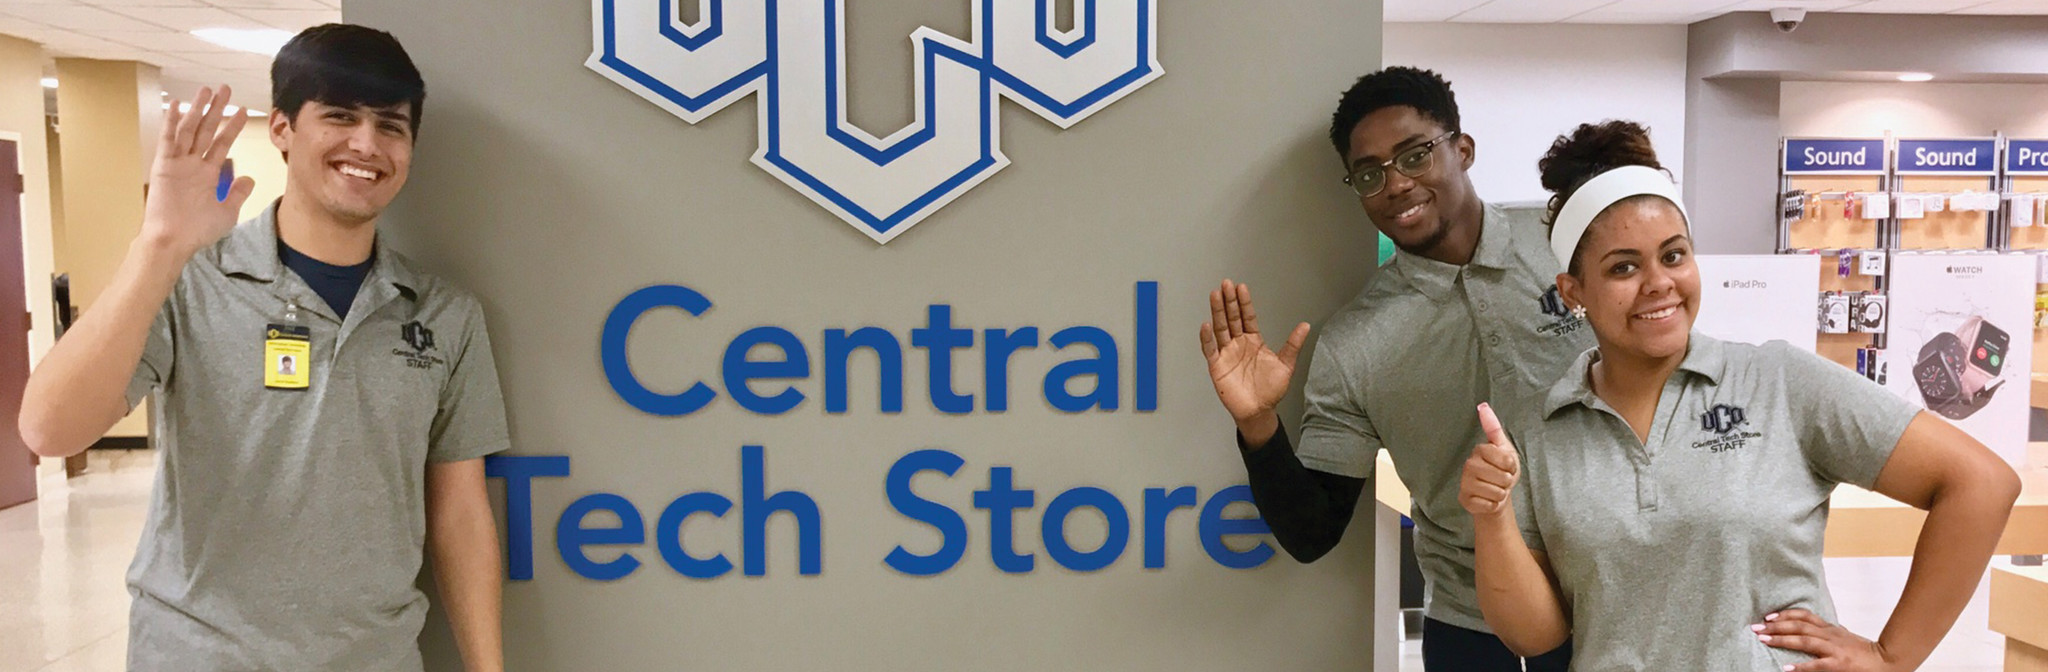 Smiling staff members in front of UCO Central Tech Store sign